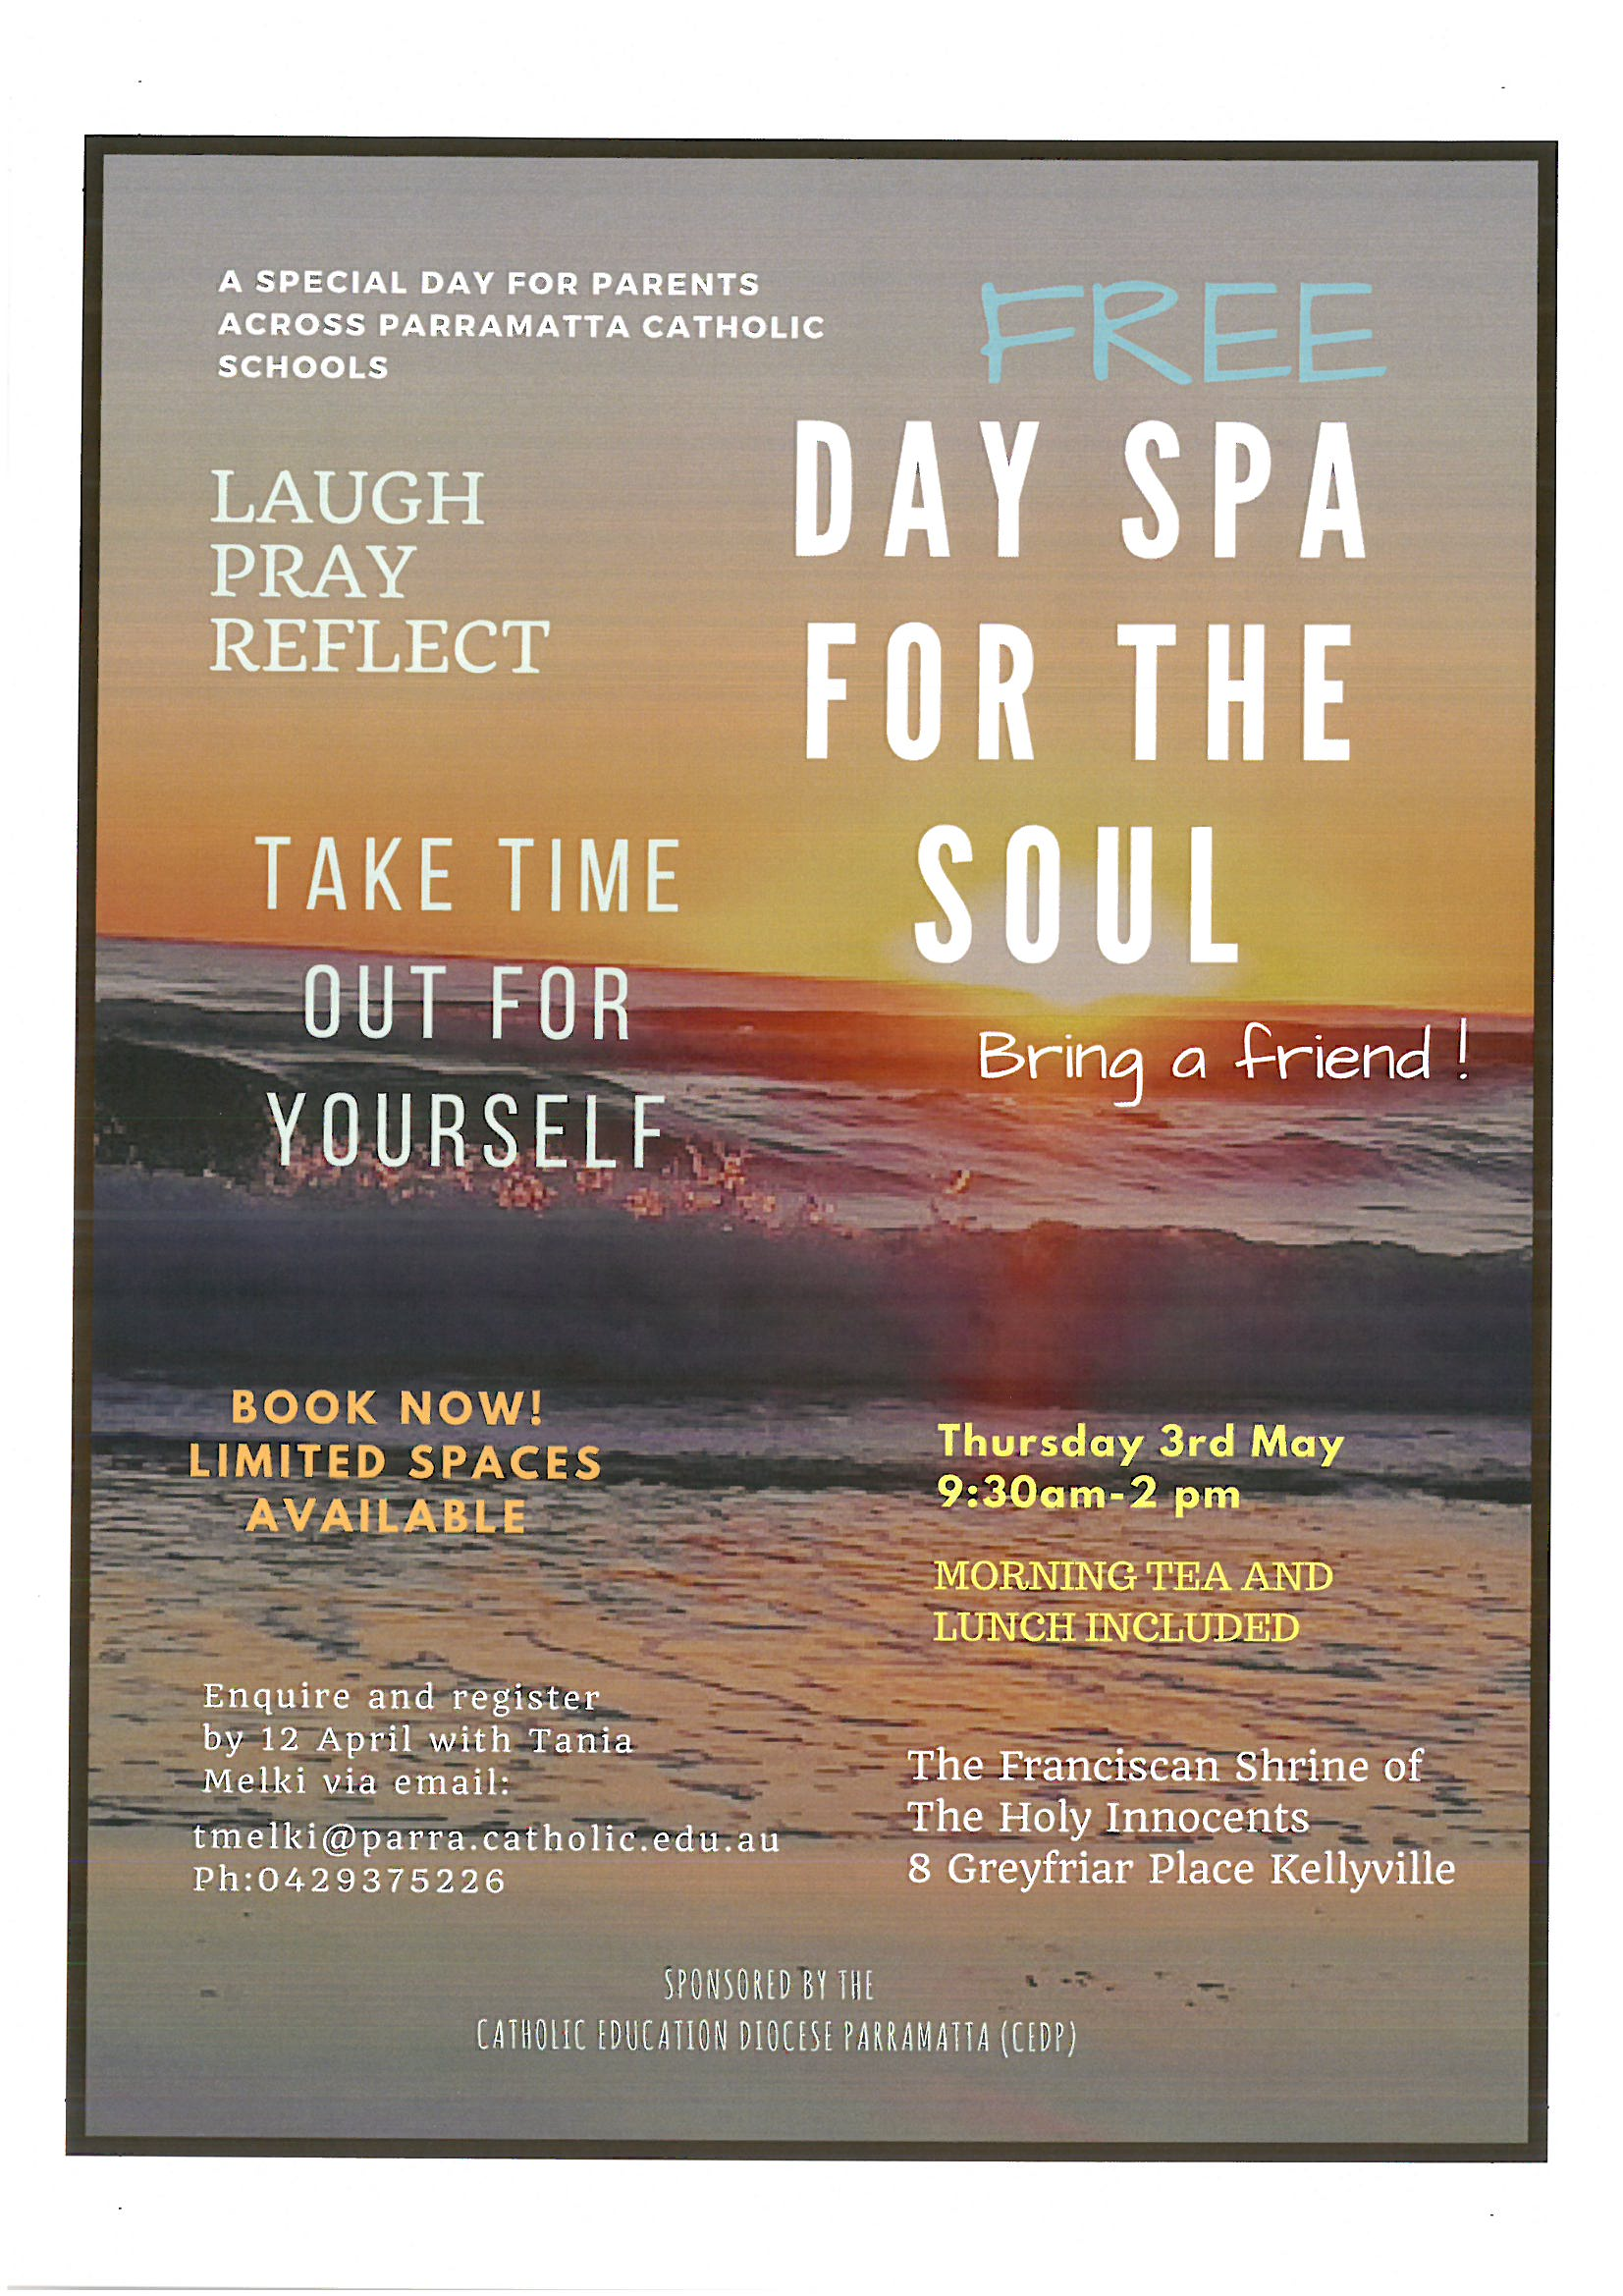 Day Spa for the Soul